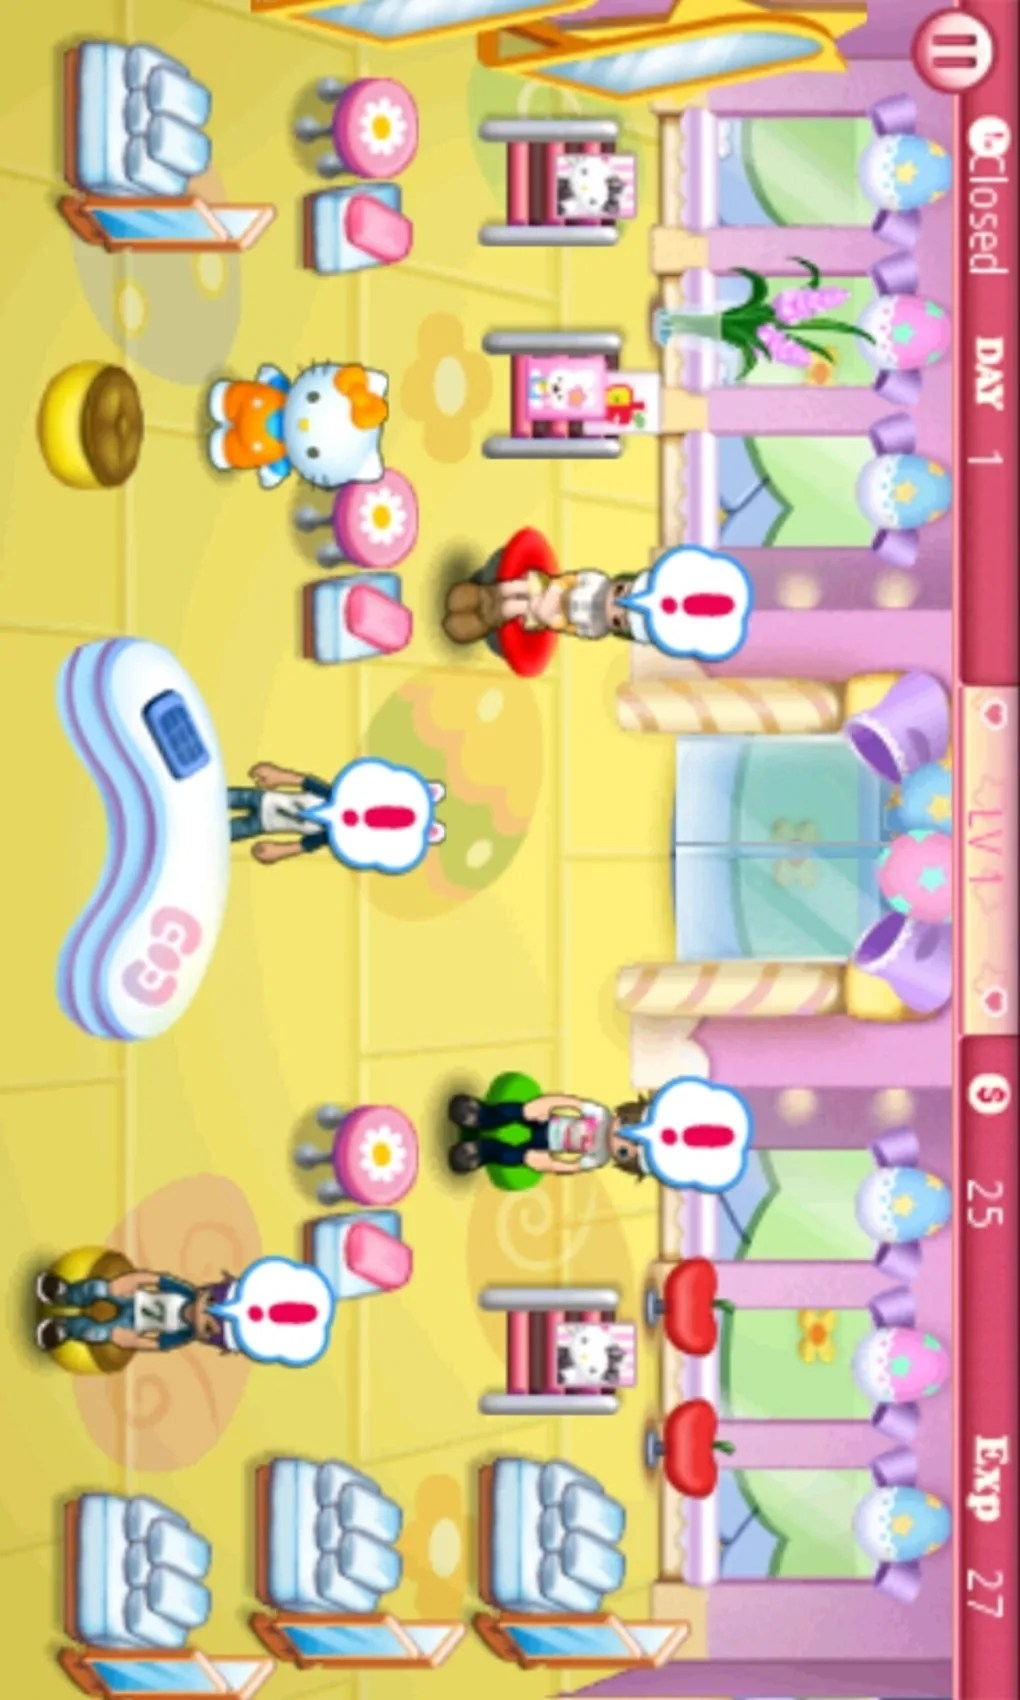 Game Salon Hello Kitty : salon, hello, kitty, Hello, Kitty, Beauty, Salon, Android, Download